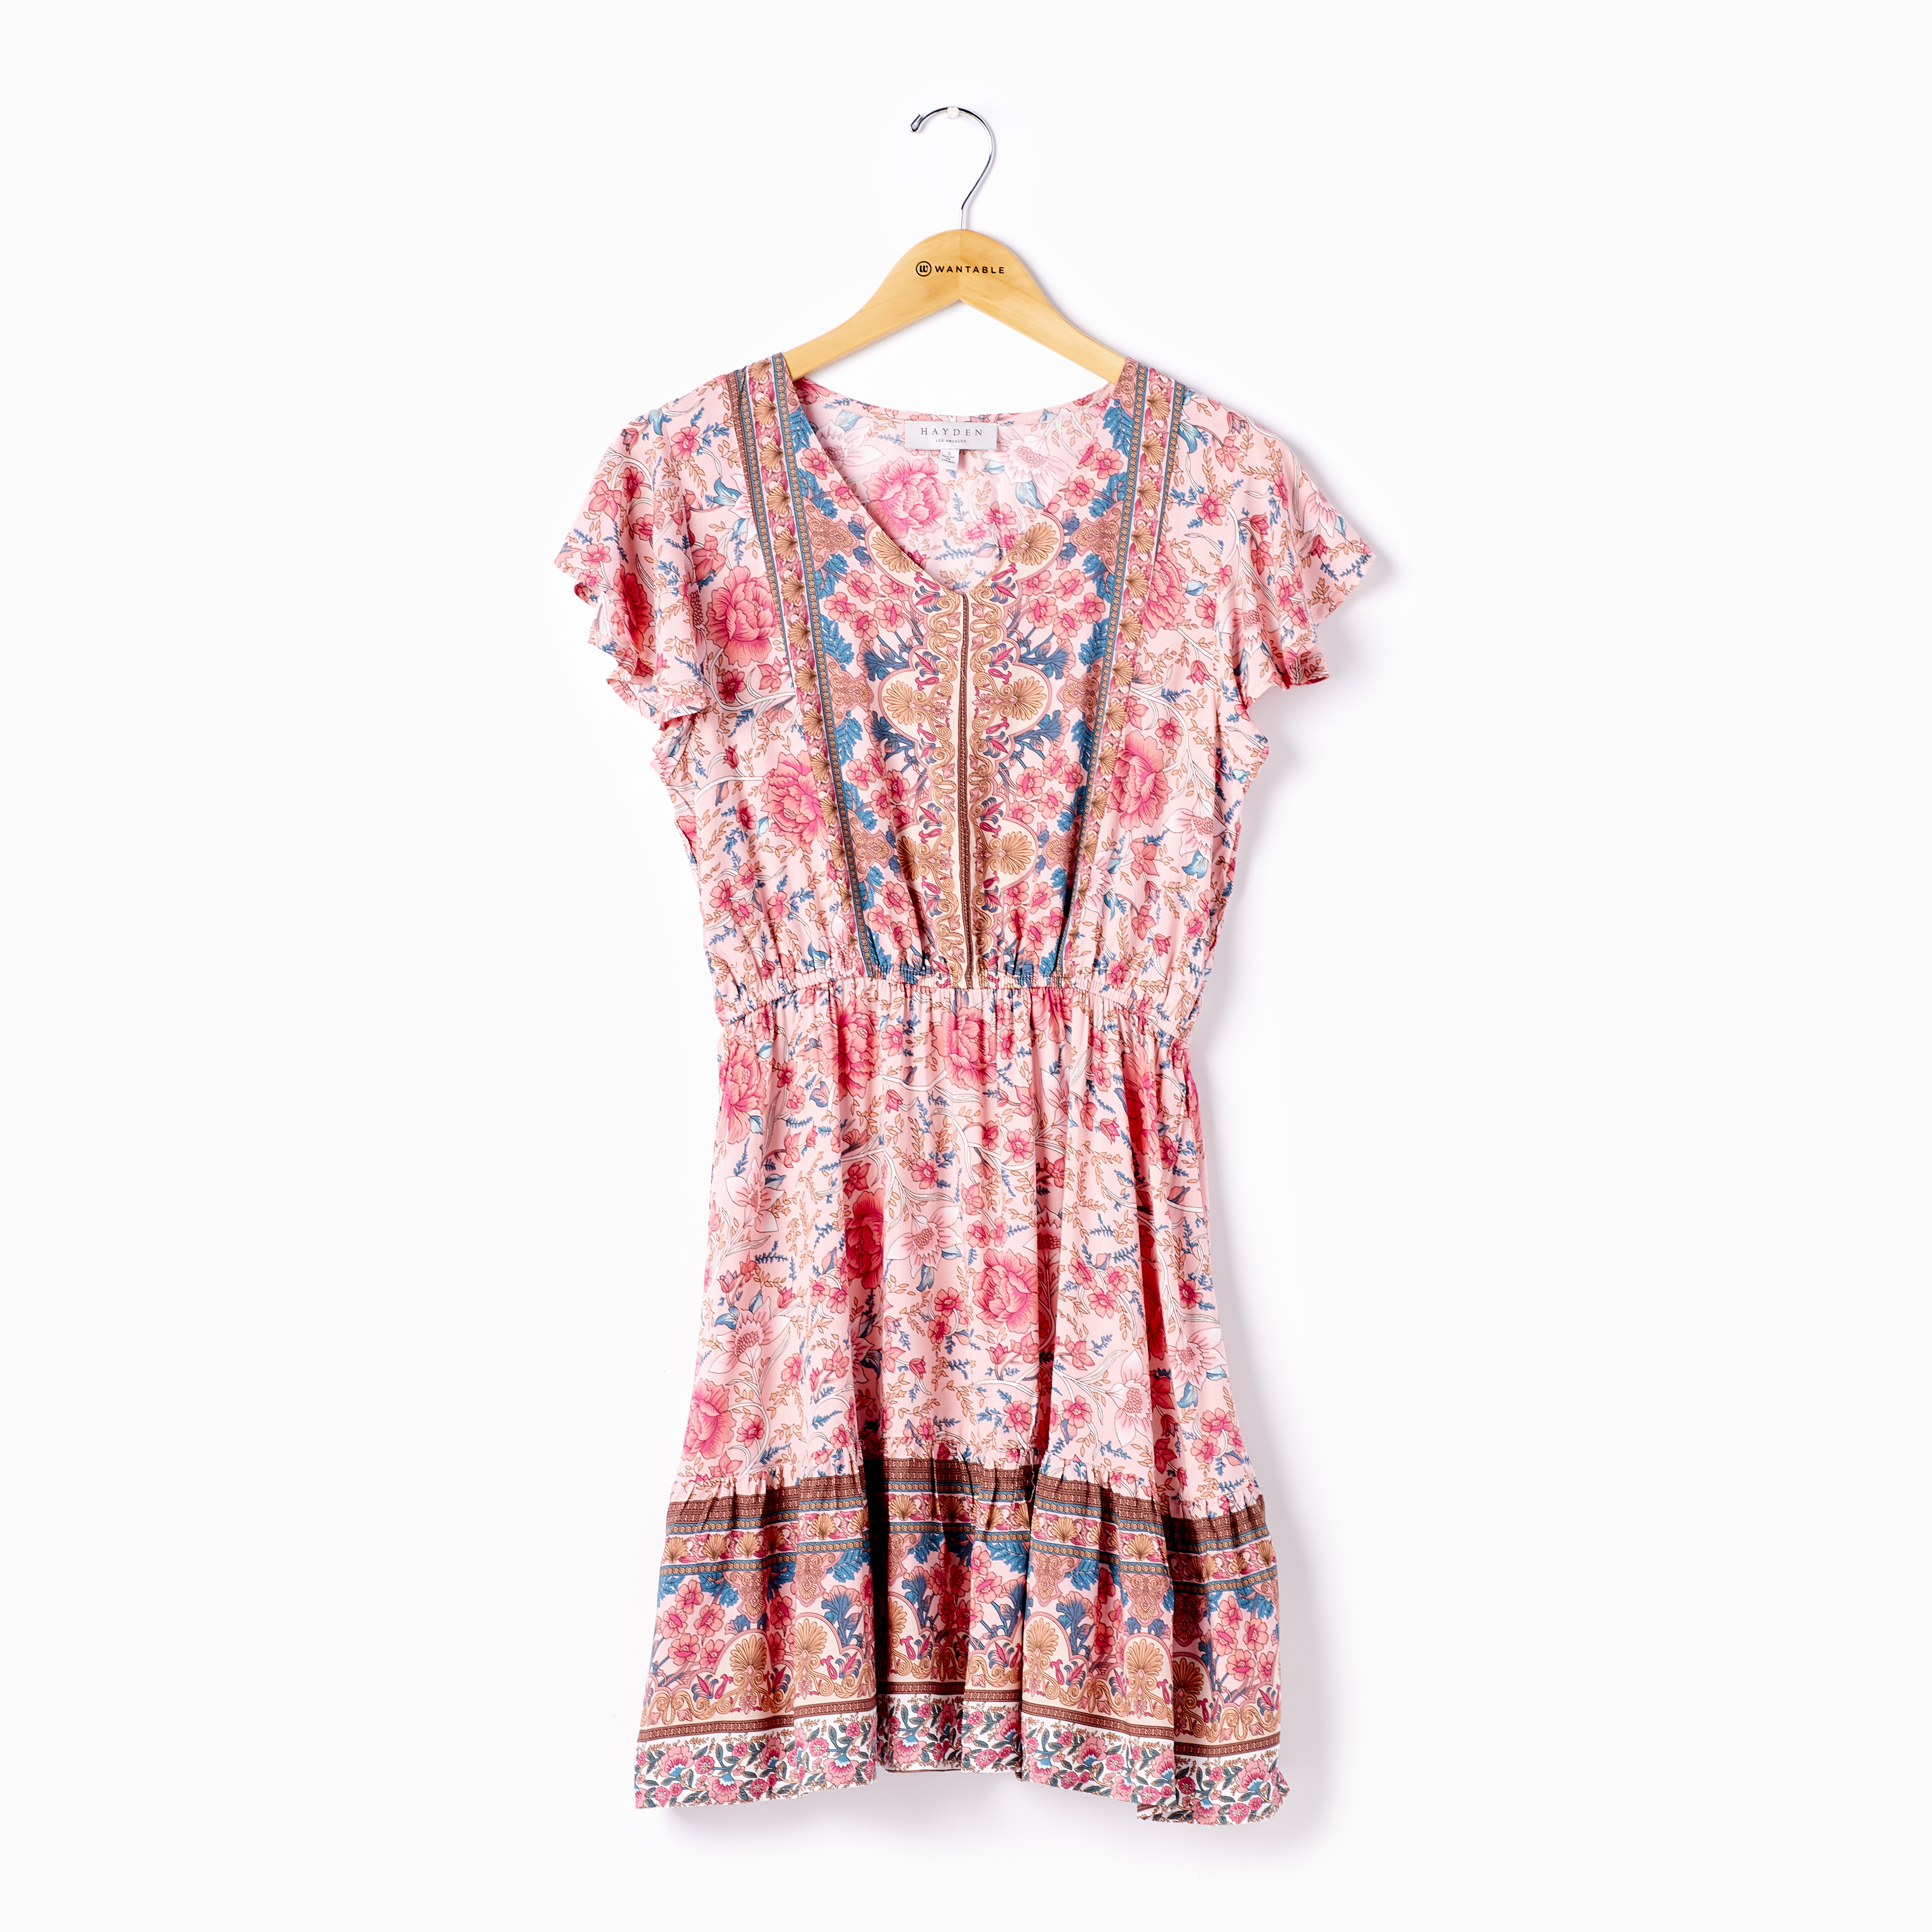 Red Boho Fit and Flare Mini Dress with Flutter Sleeves on a Hanger- Casual Summer Dress by Hayden Los Angeles